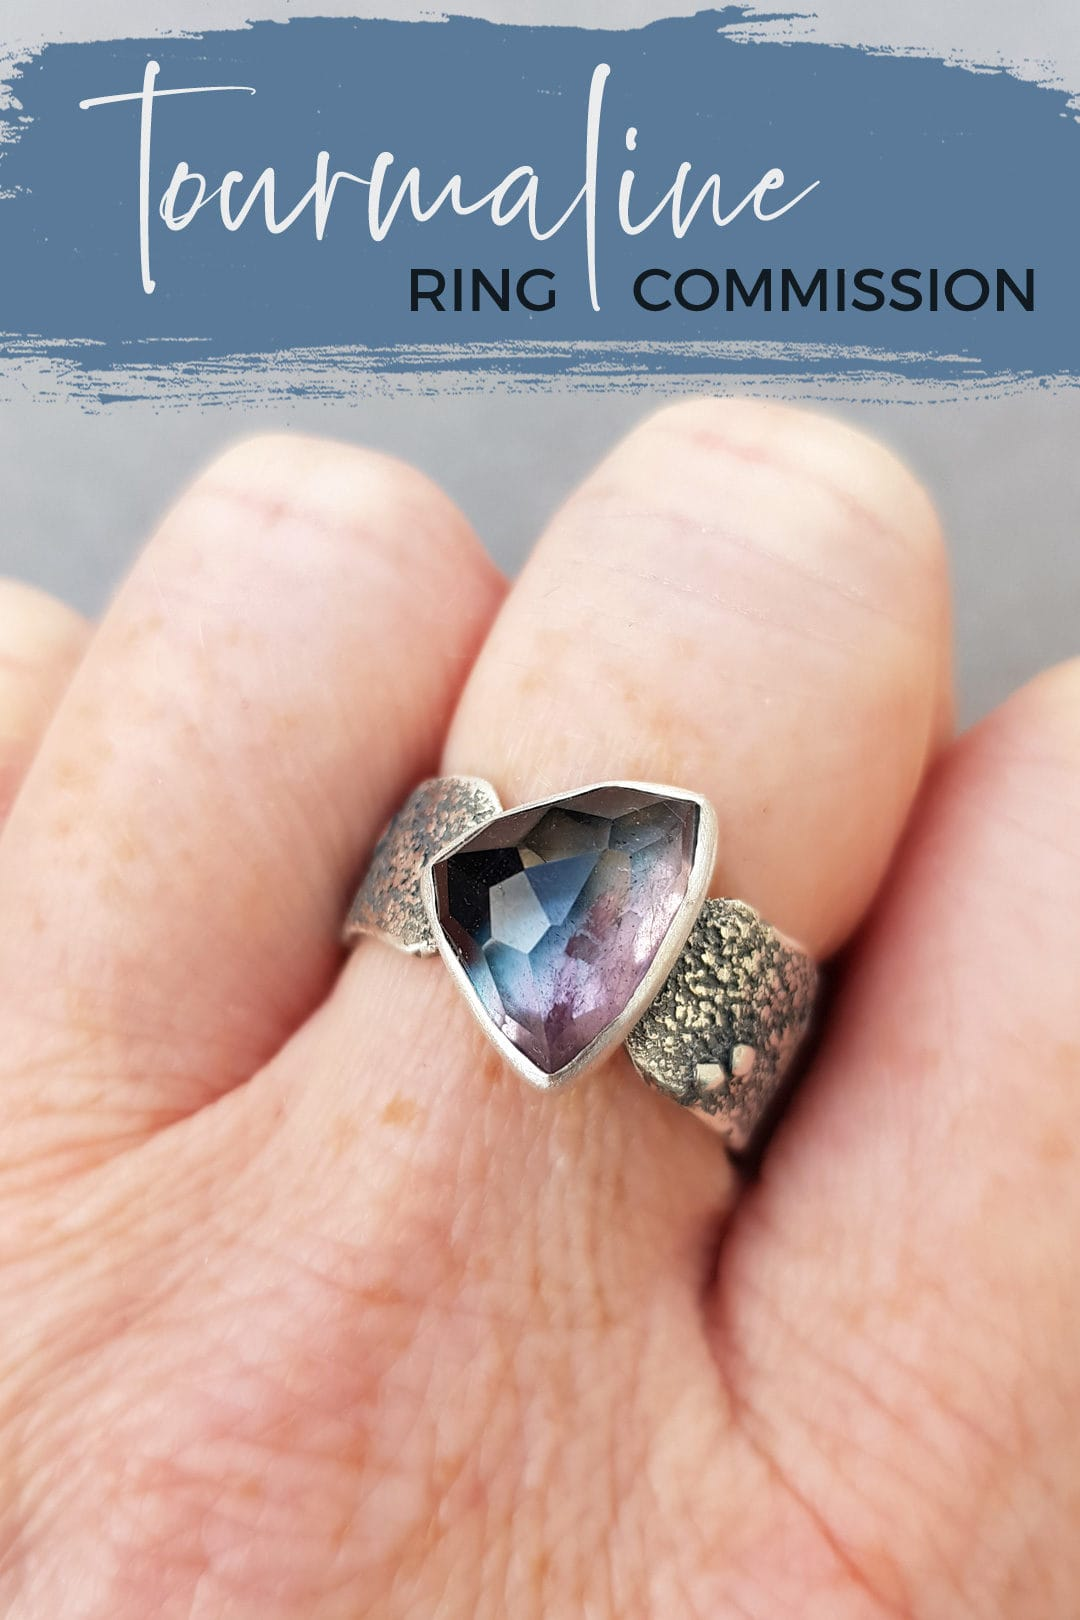 Bi-colour tourmaline ring commission in textured sterling silver